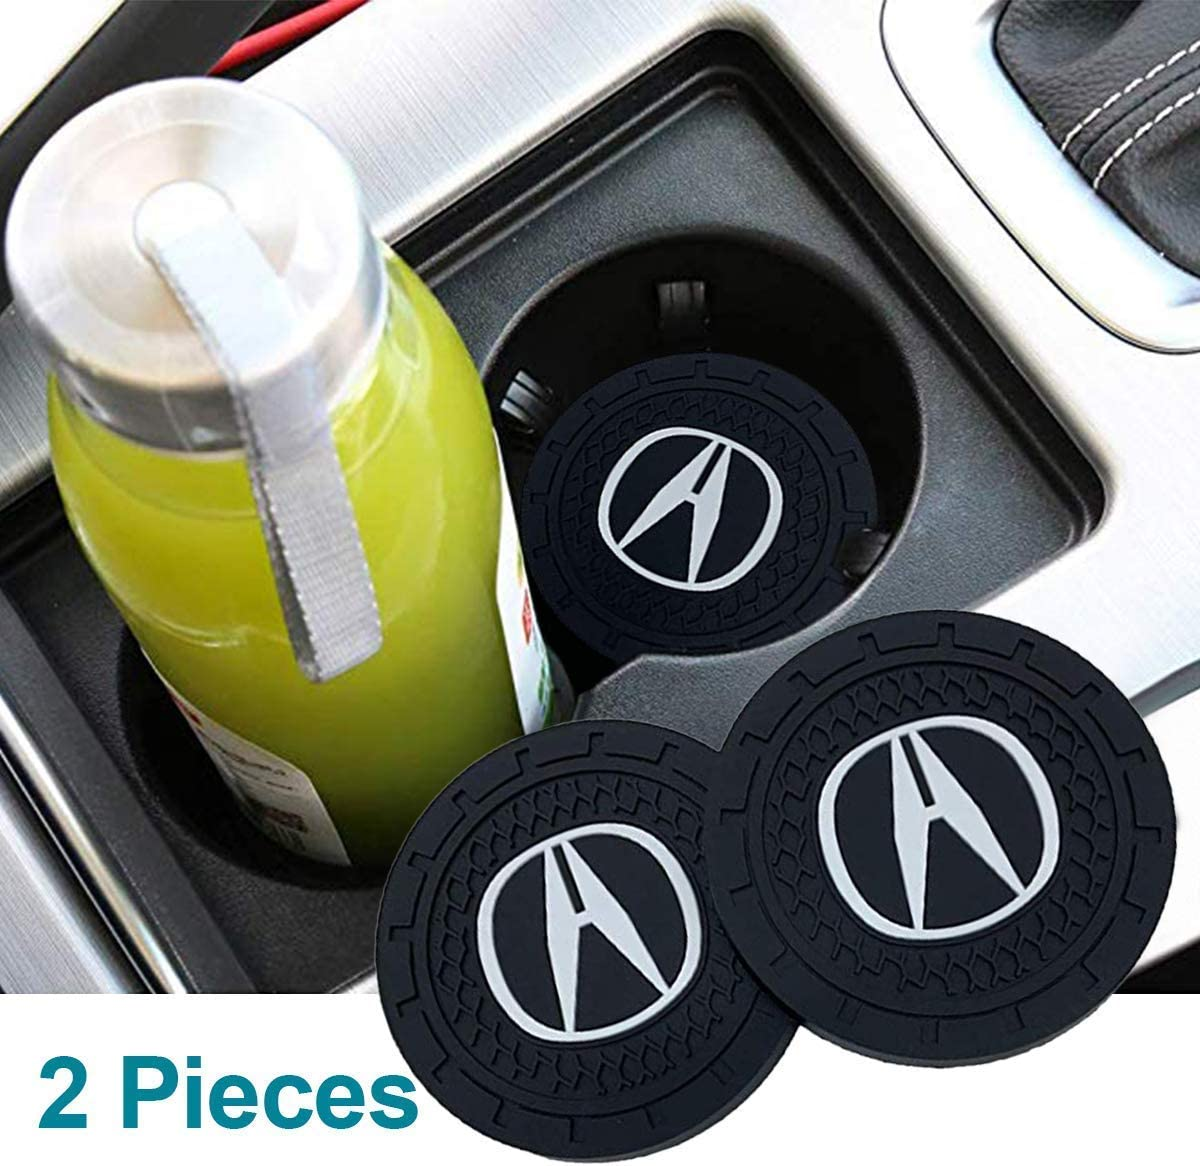 fit All Model JDclubs 2.75 Inch Diameter Oval Tough Car Logo Vehicle Travel Auto Cup Holder Insert Coaster Can 2 Pcs Pack